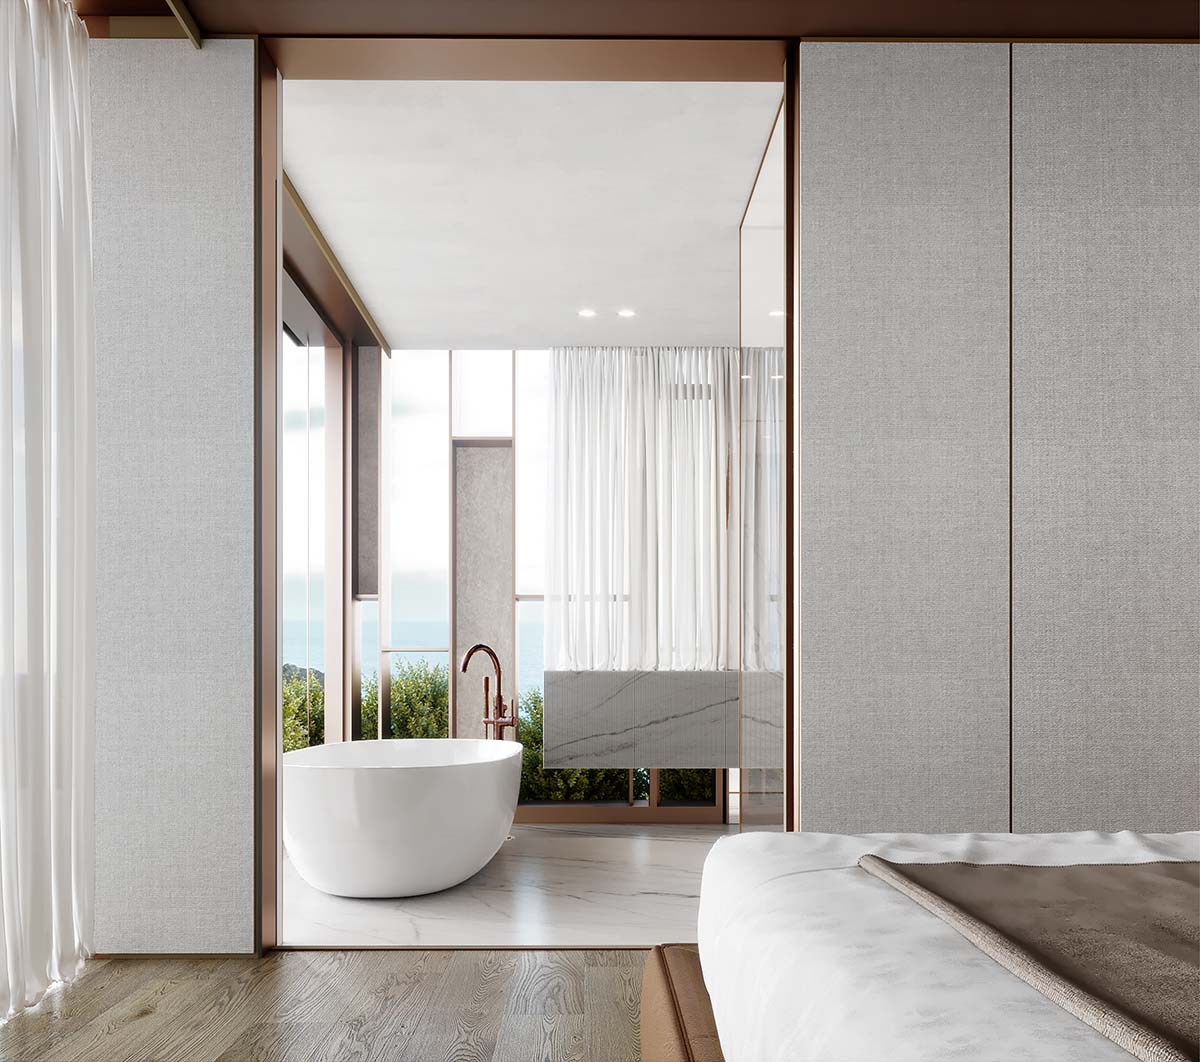 Bedroom with ensuite bathroom showing bathtub and view